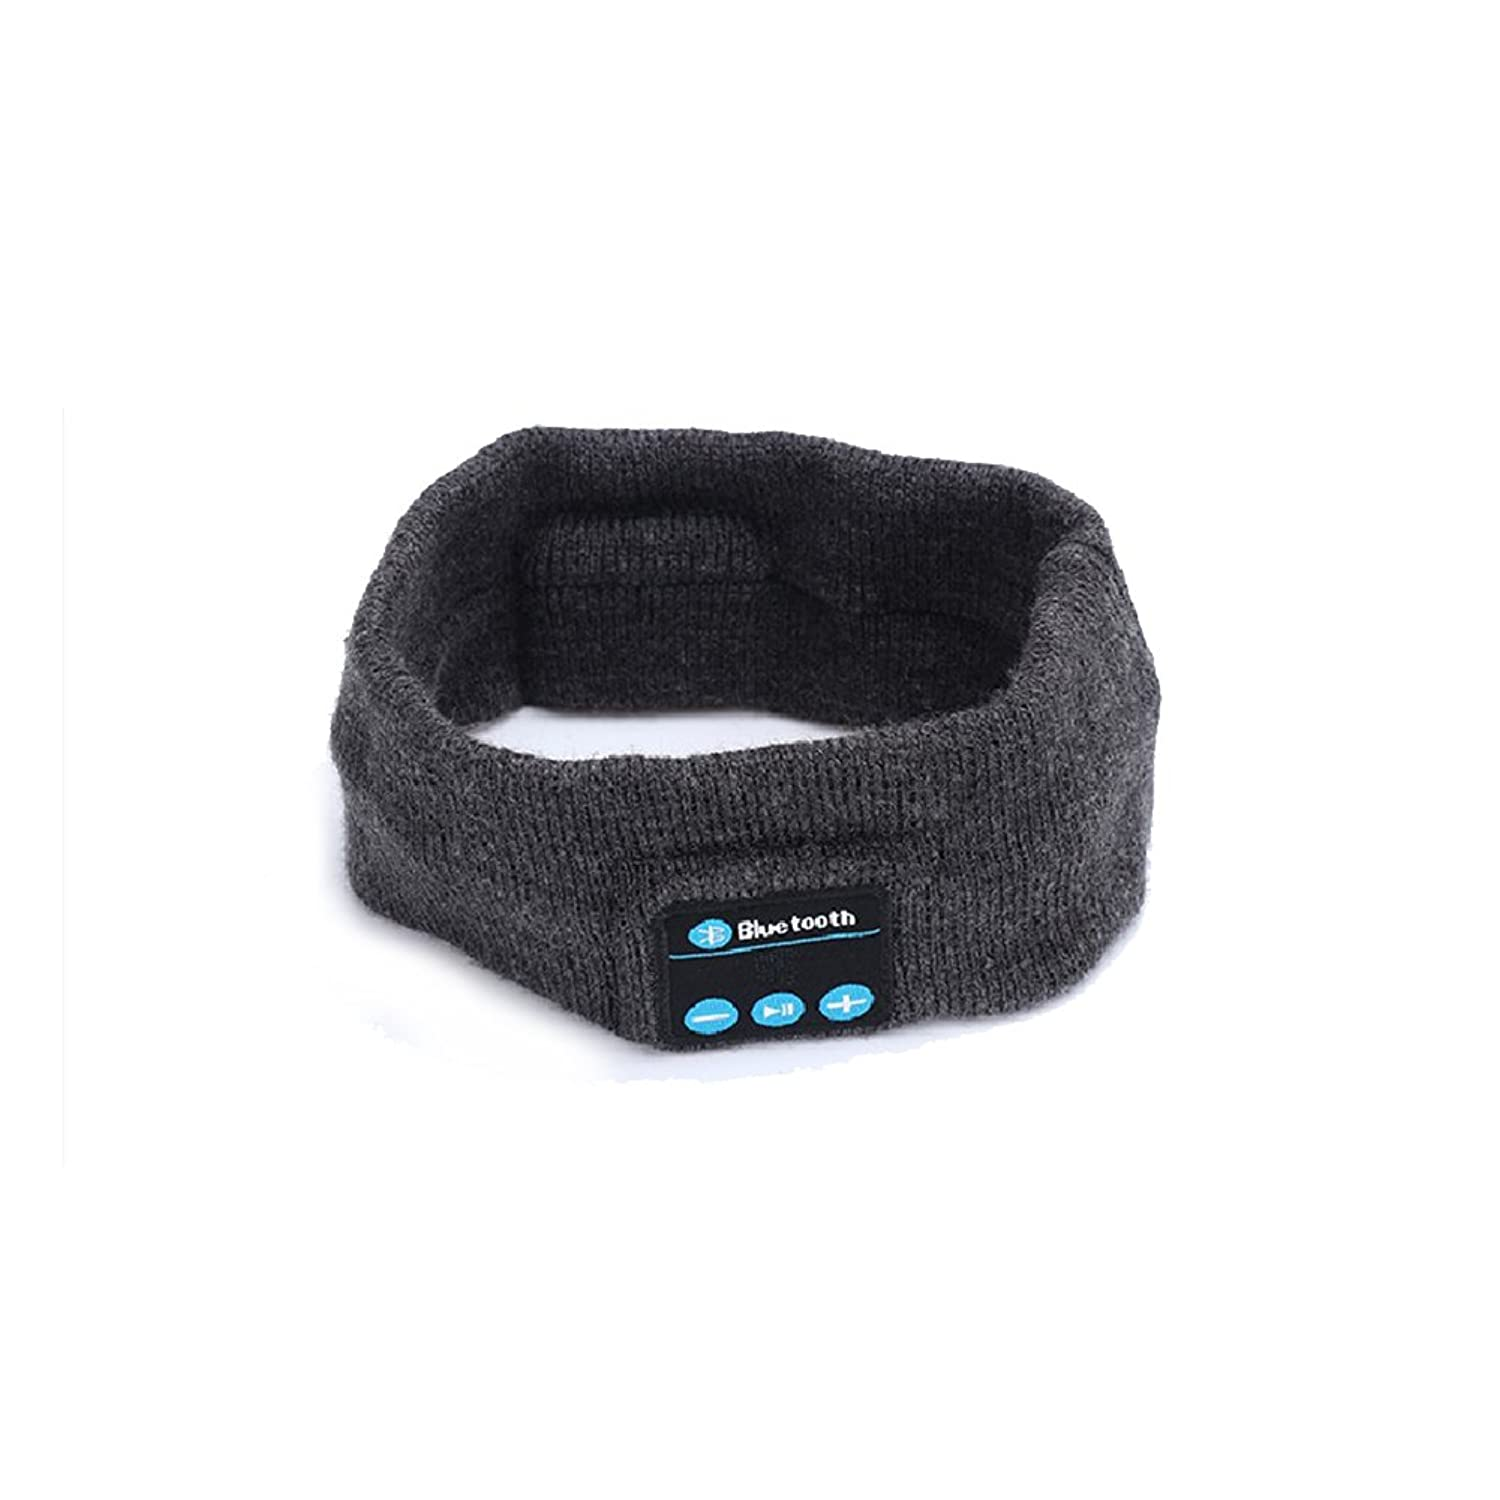 Indexu Elastic Smart Sports Fashion Knit Bluetooth Headband